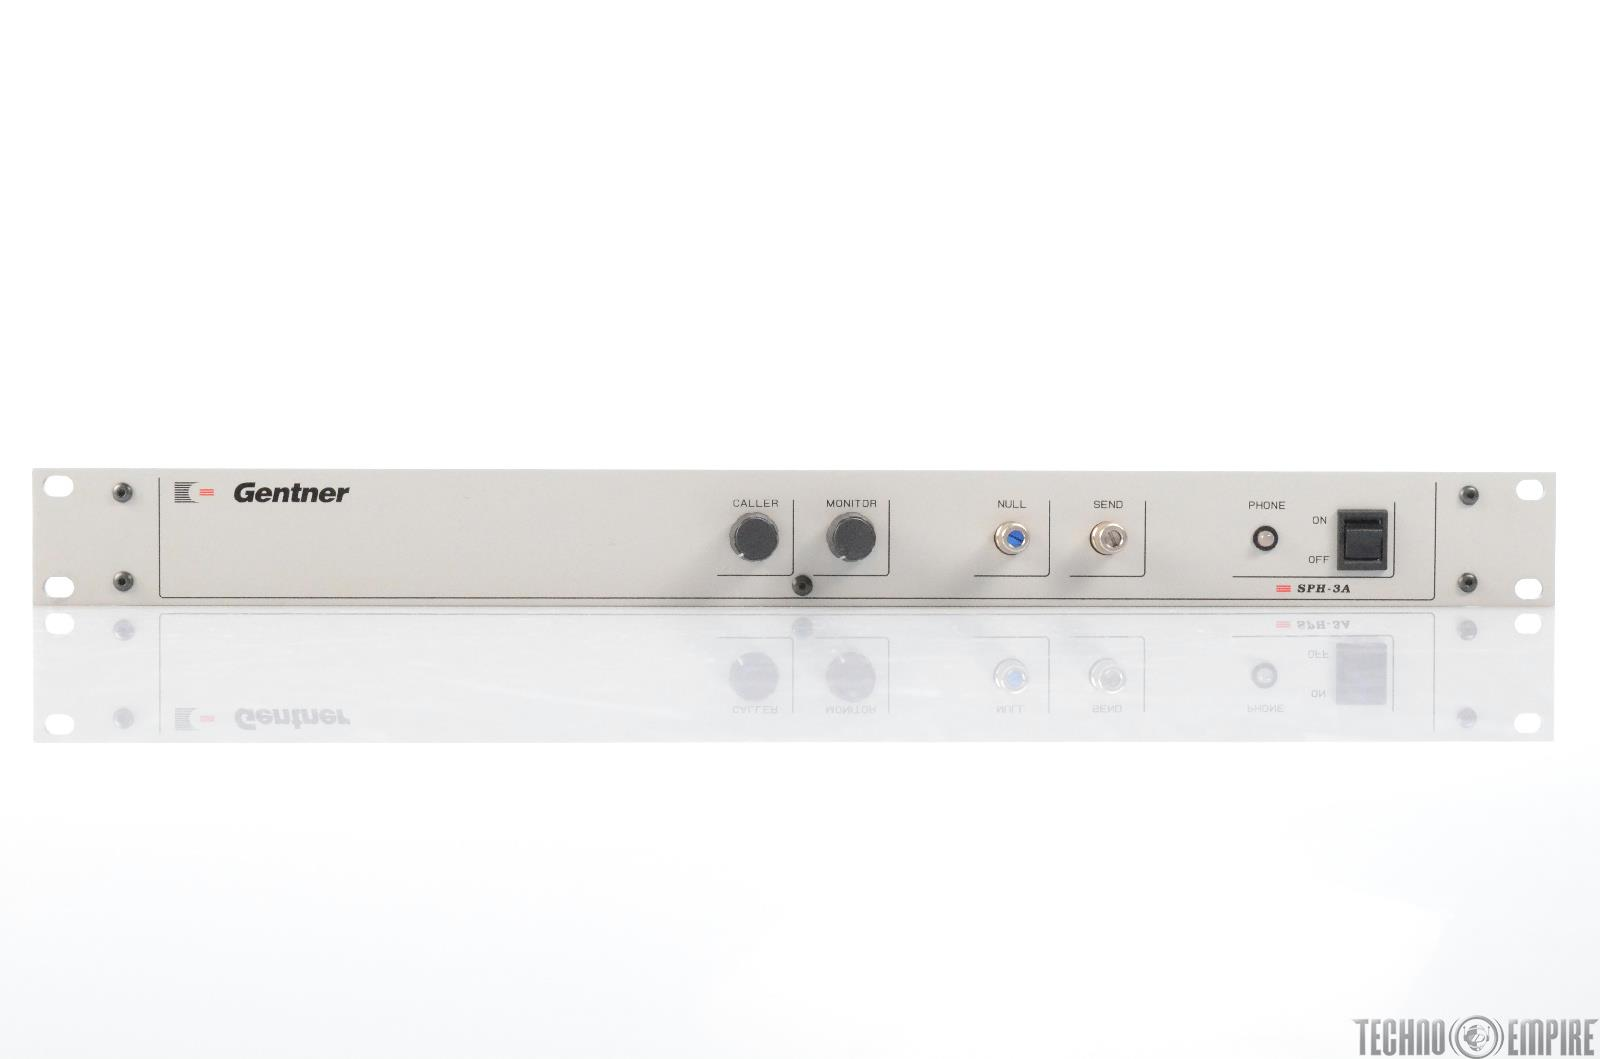 Gentner SPH-3A Broadcast Hybrid Phone Line Audio Console Mixer Interface #29492